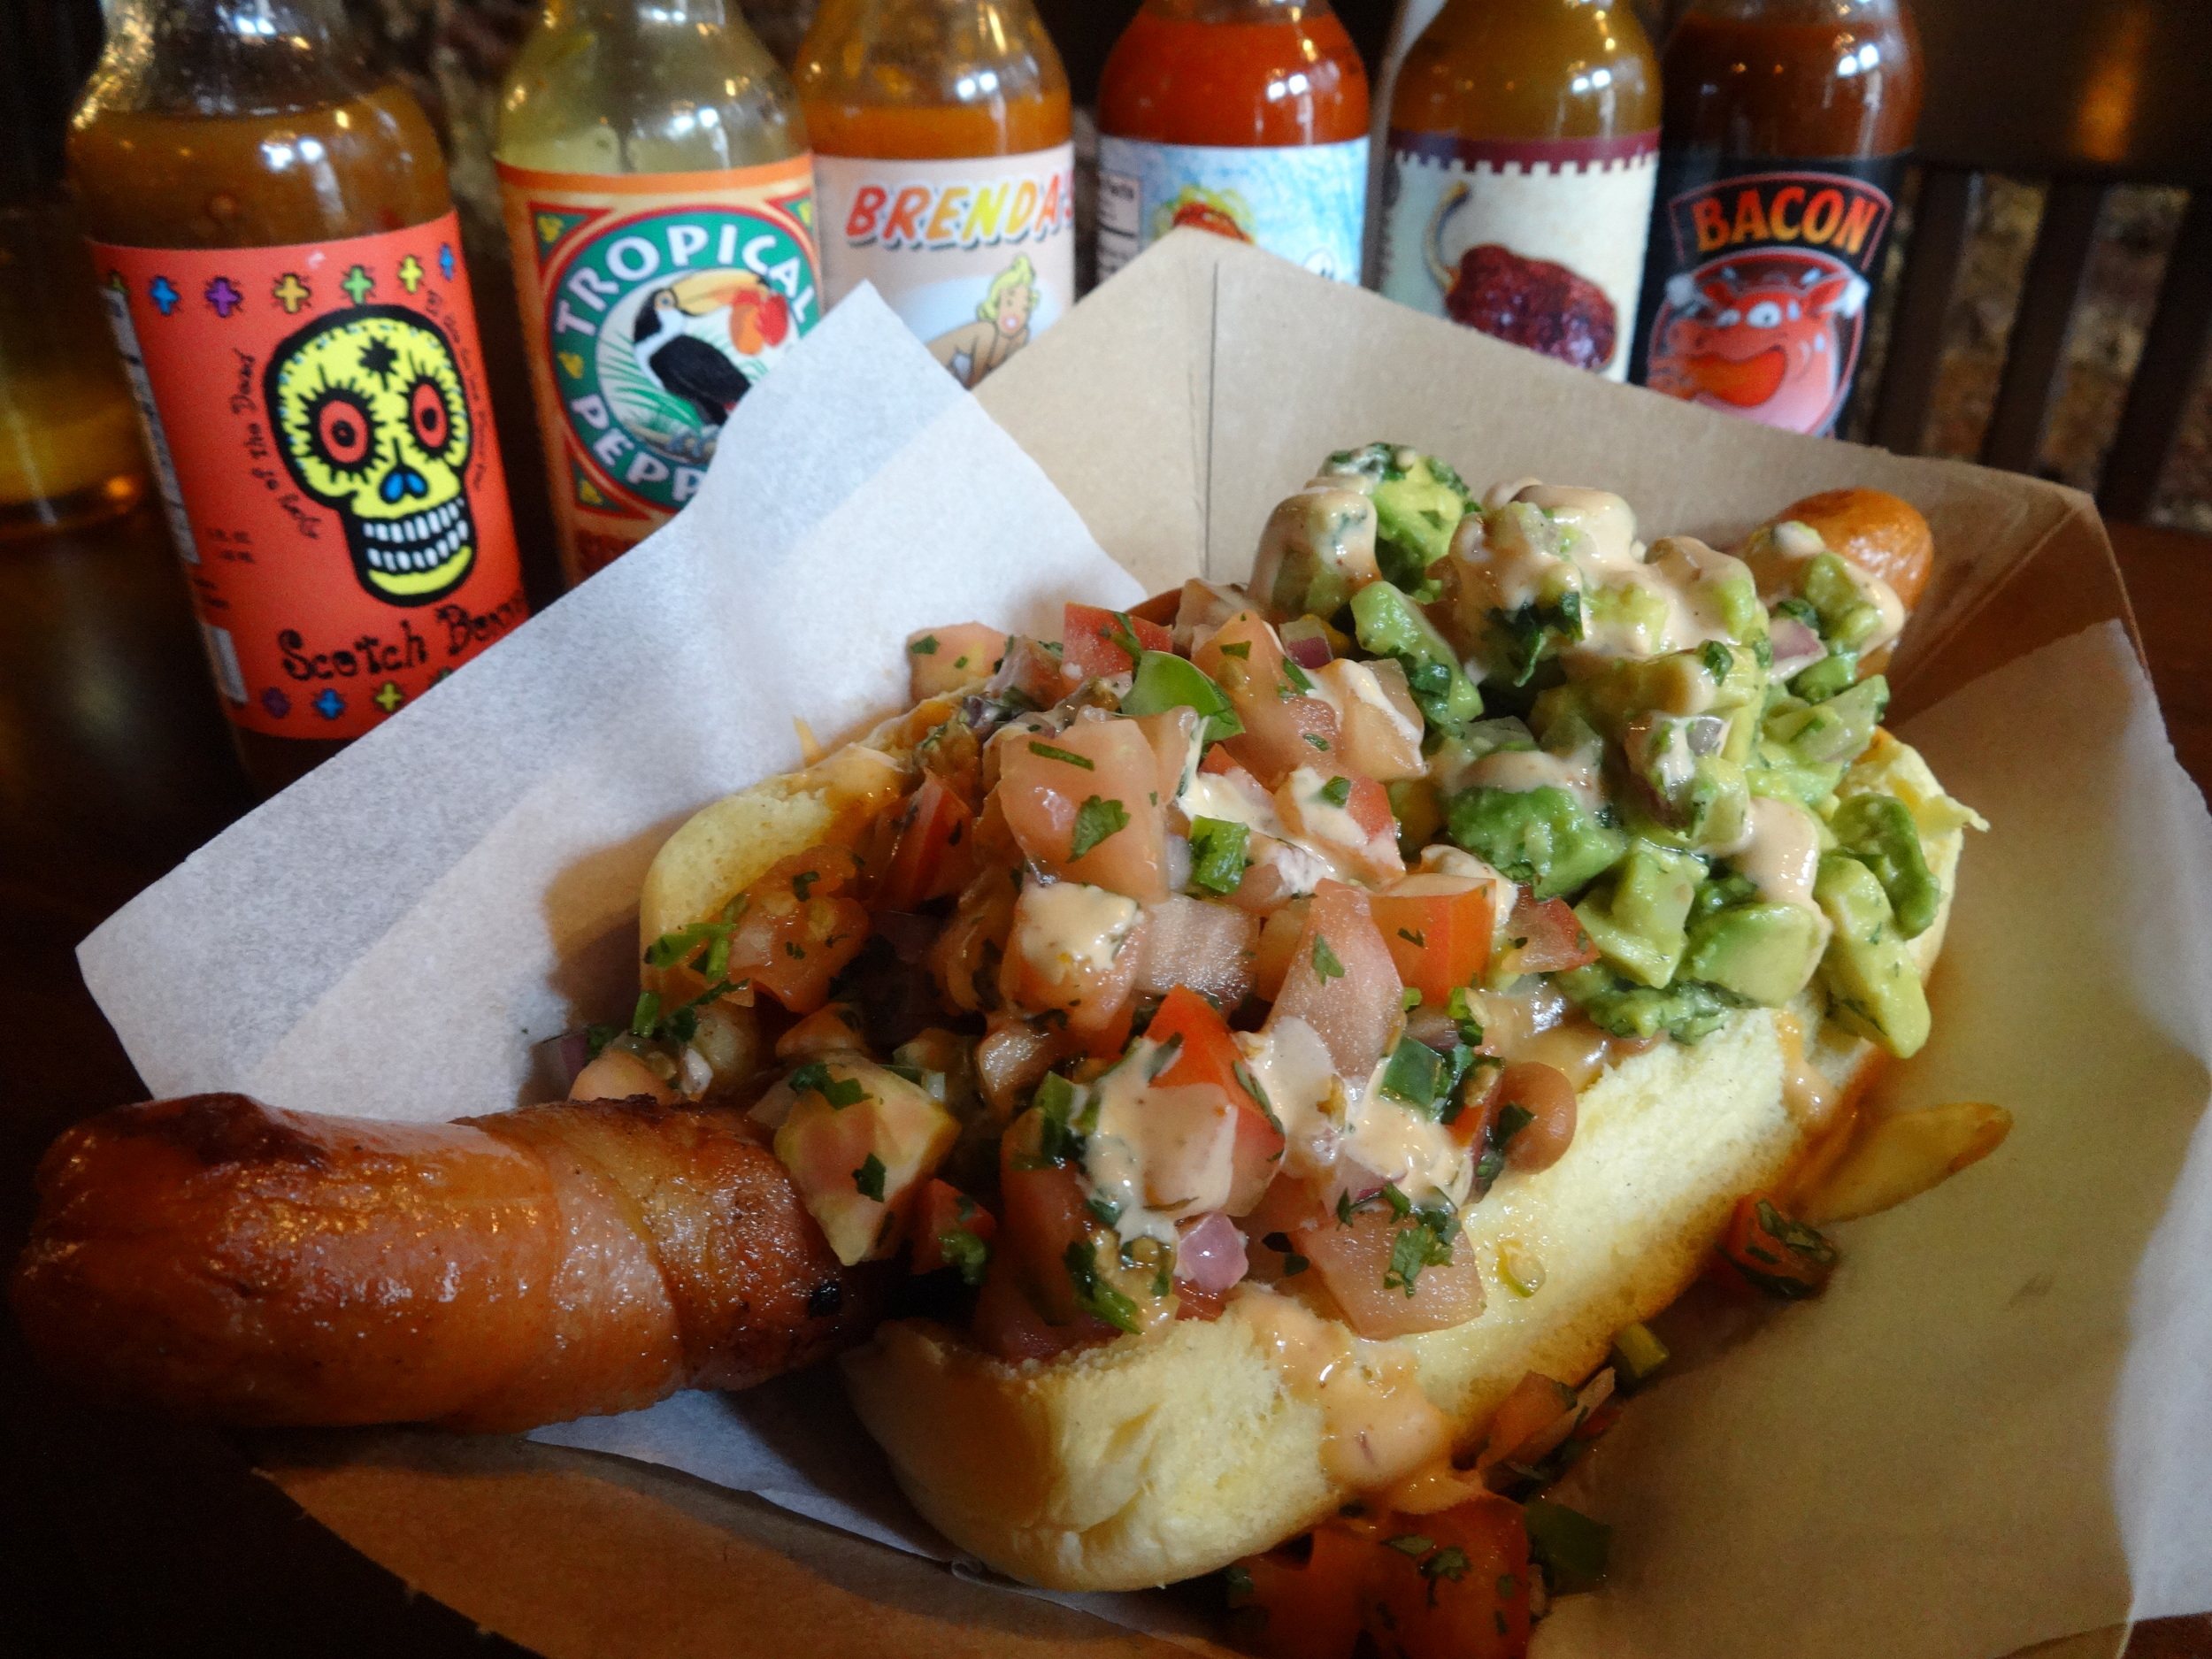 Sonoran  Hot   Dog  (Jumbo  hot   dog  wrapped in bacon, topped with beans, guacamole, pico sauce and chipotle aioli)